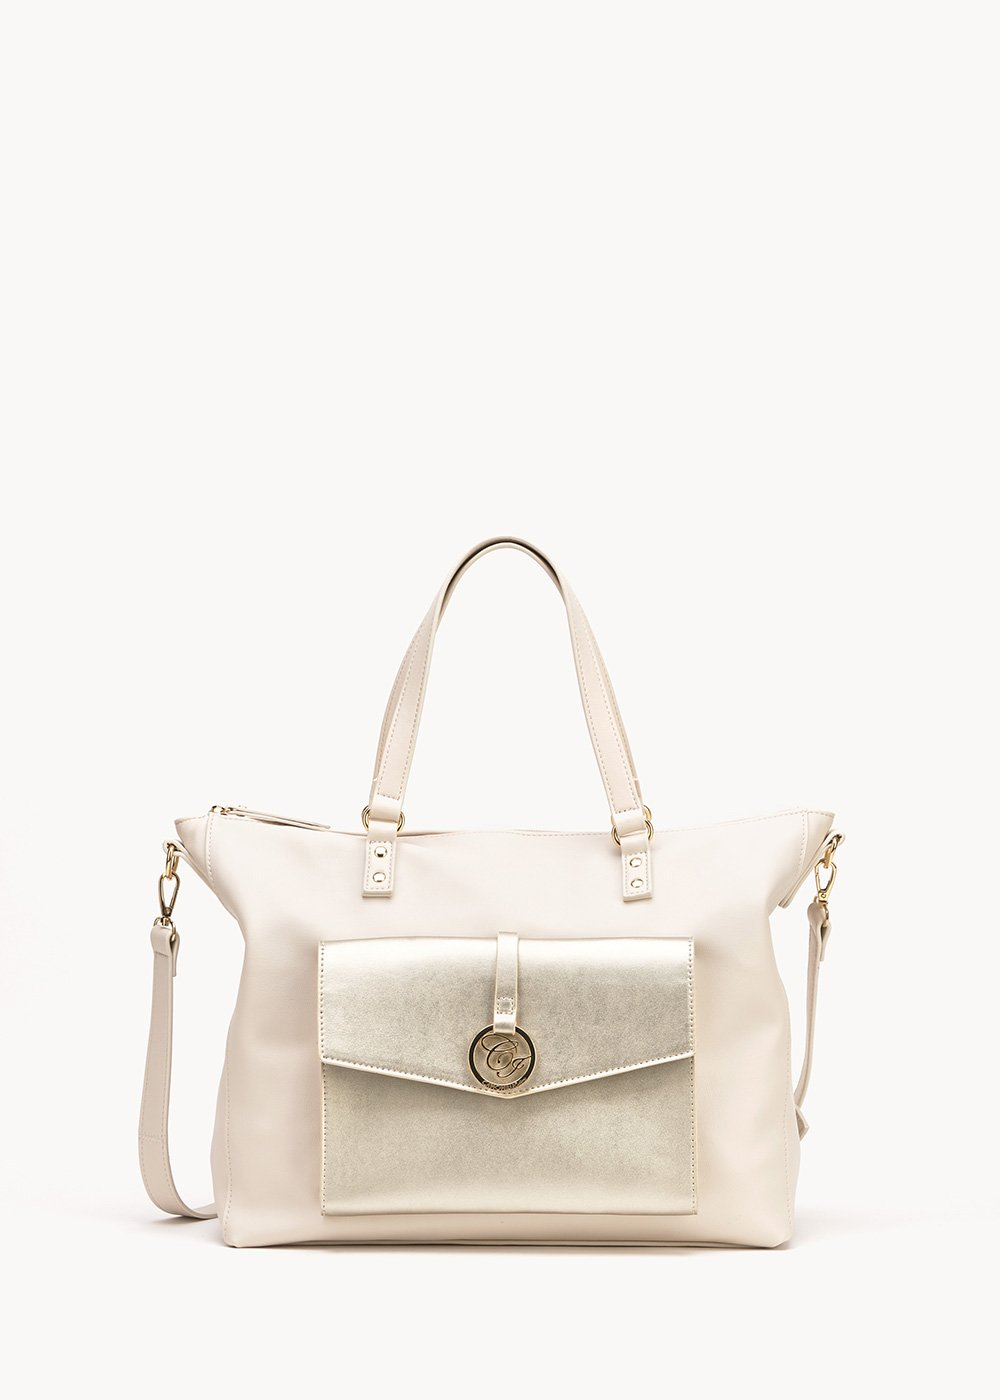 Shopping bag Bland white&gold - Cocco / Gold - Donna